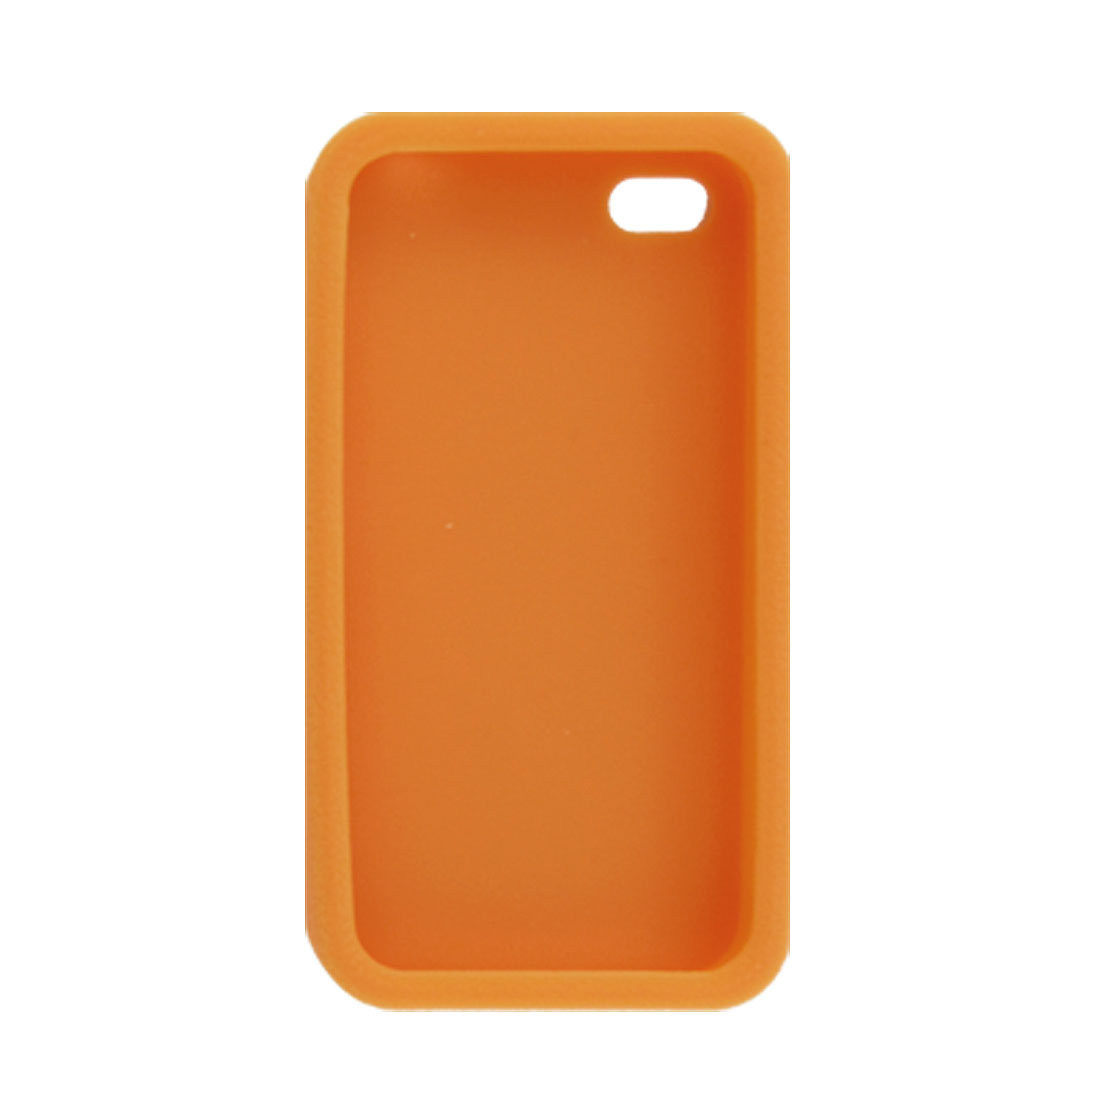 Orange Texture Silicone Shield Case for Apple iPhone 4 4G